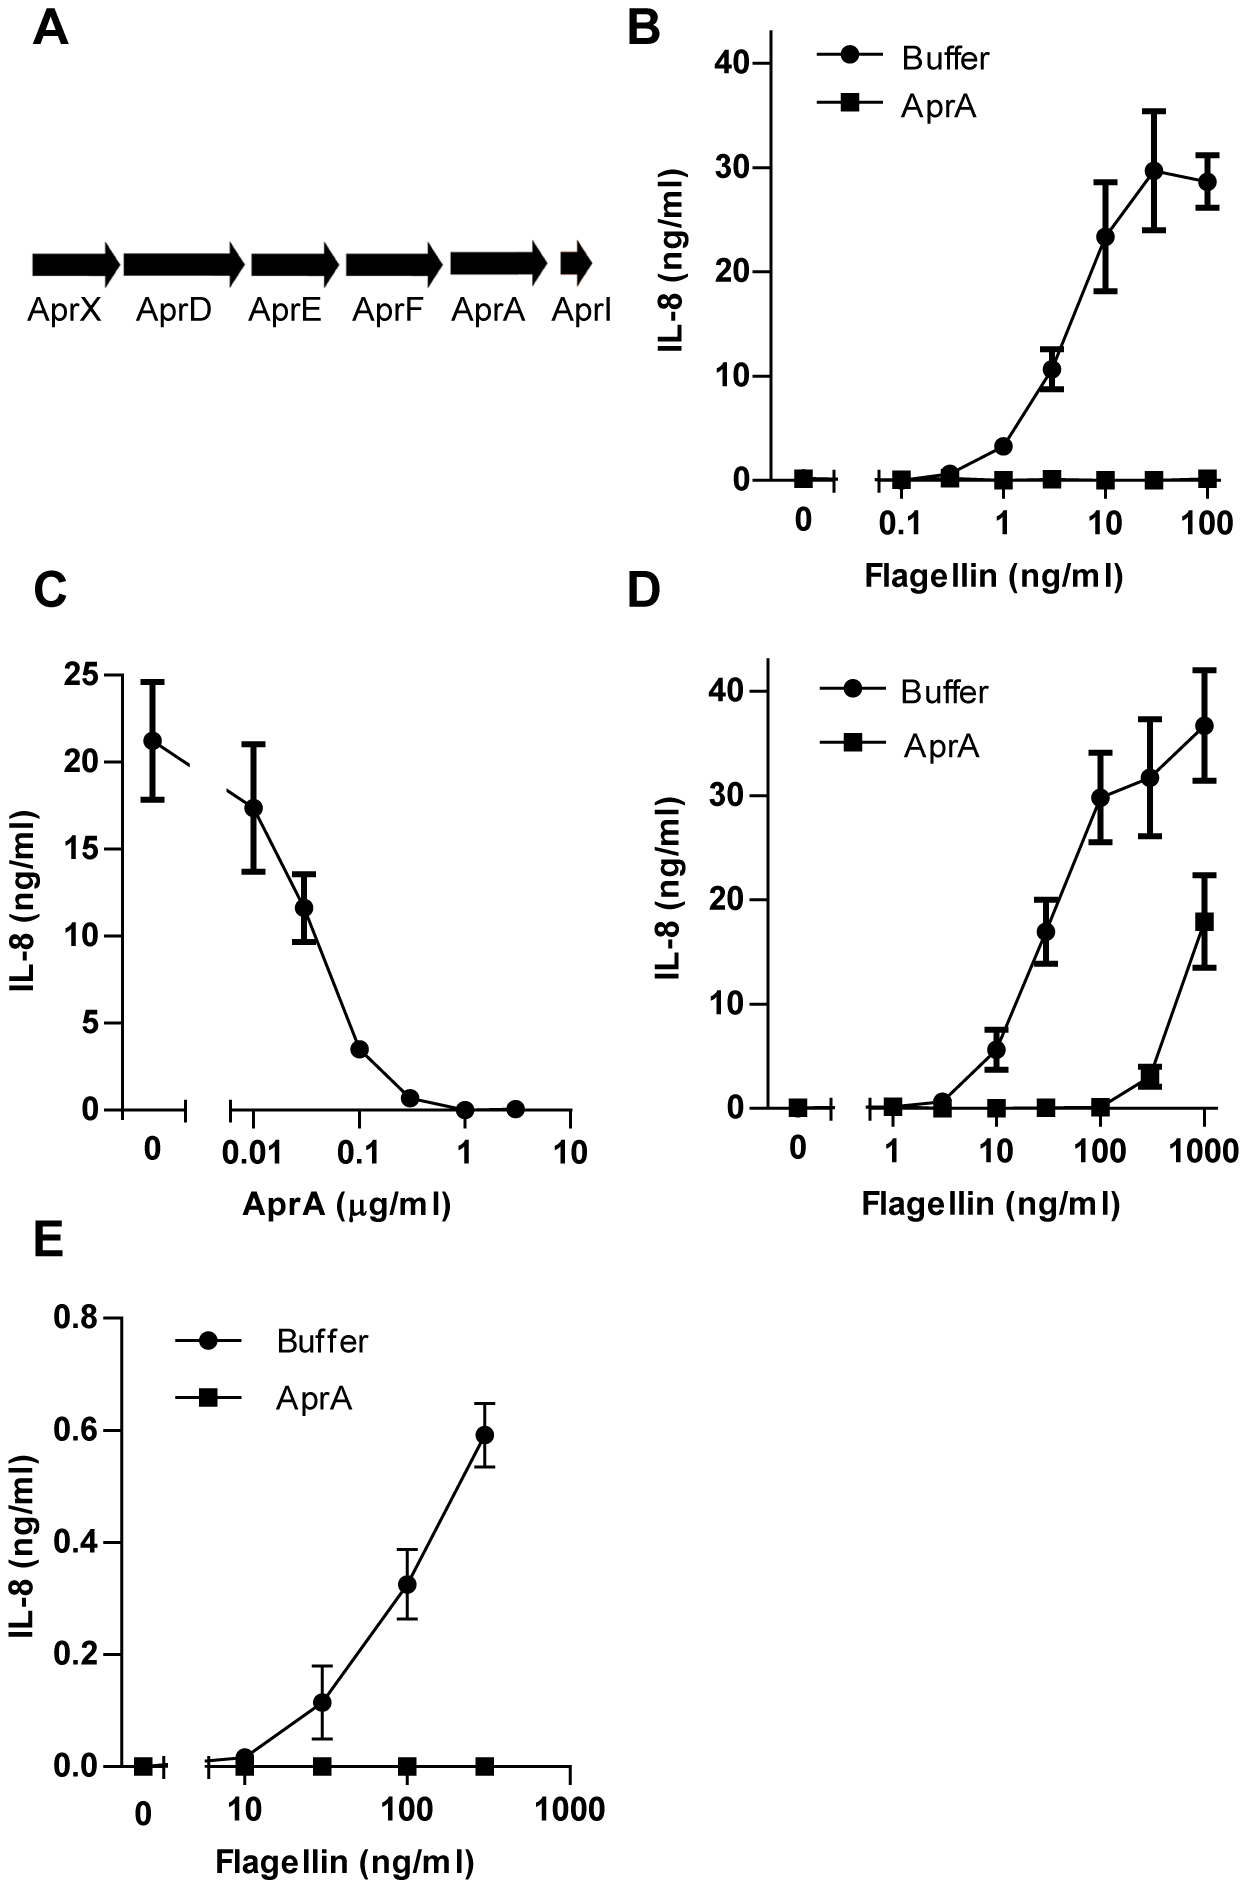 AprA prevents flagellin-induced IL-8 production by HEK/TLR5 cells.